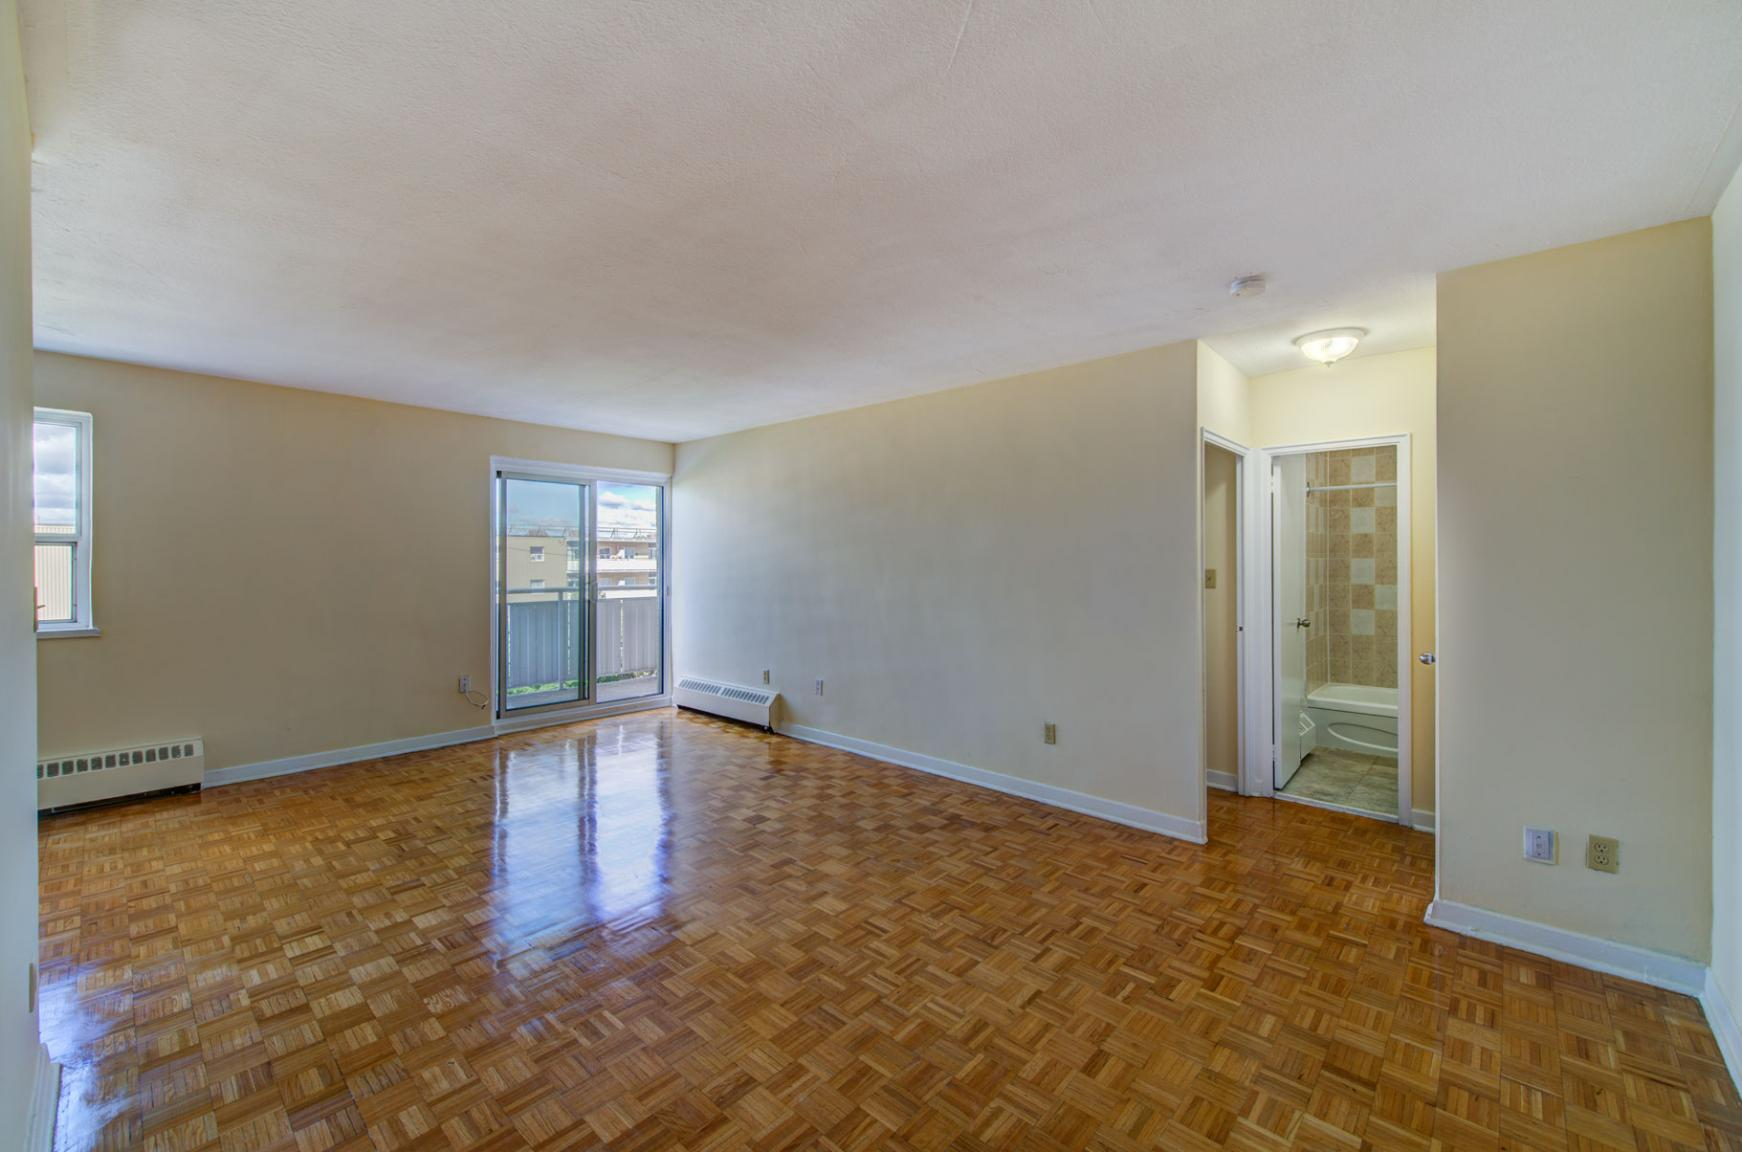 Studio / Bachelor Apartments for rent in Toronto at Lake Promenade Community - Photo 17 - RentersPages – L400279